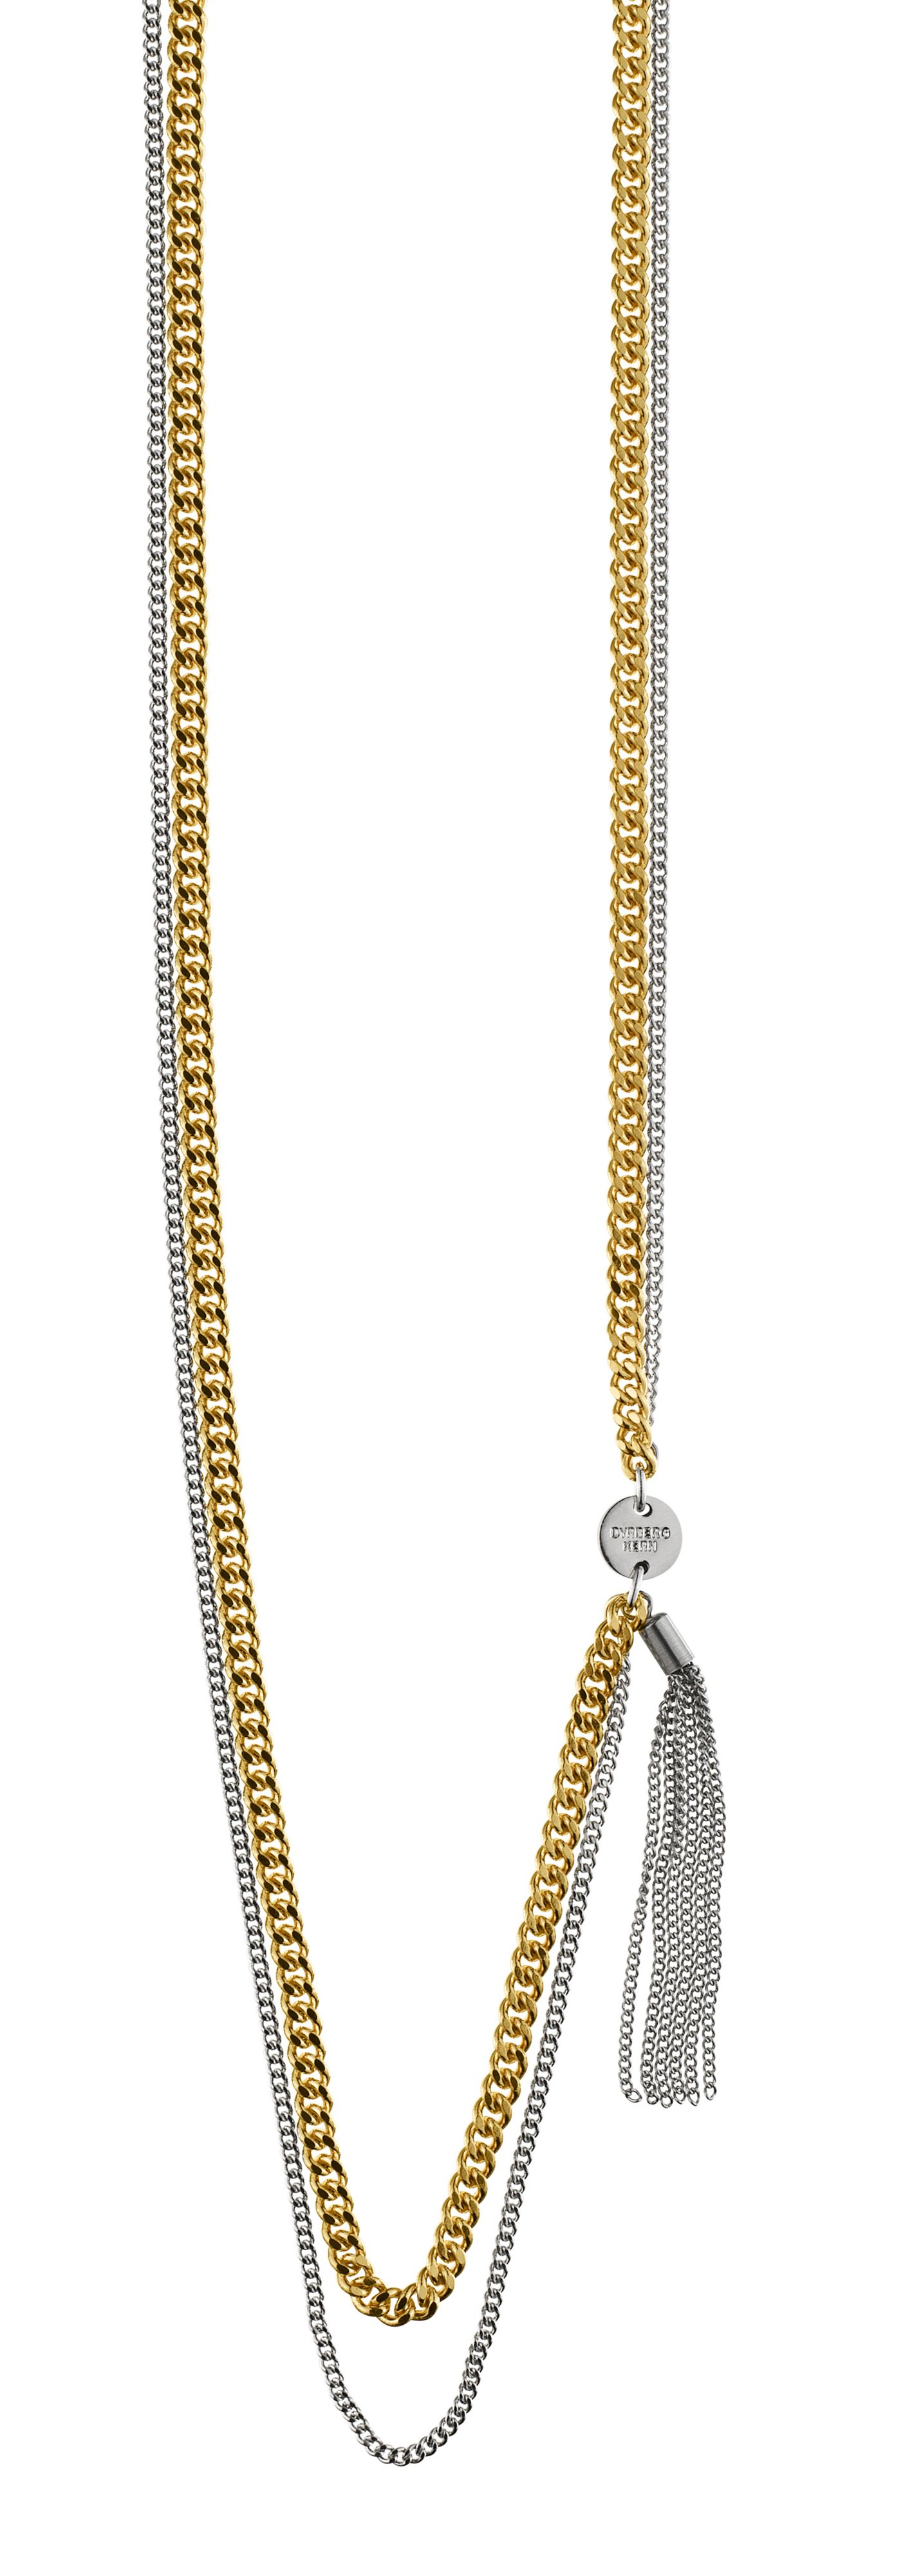 Chainelle Shiny Gold Necklace